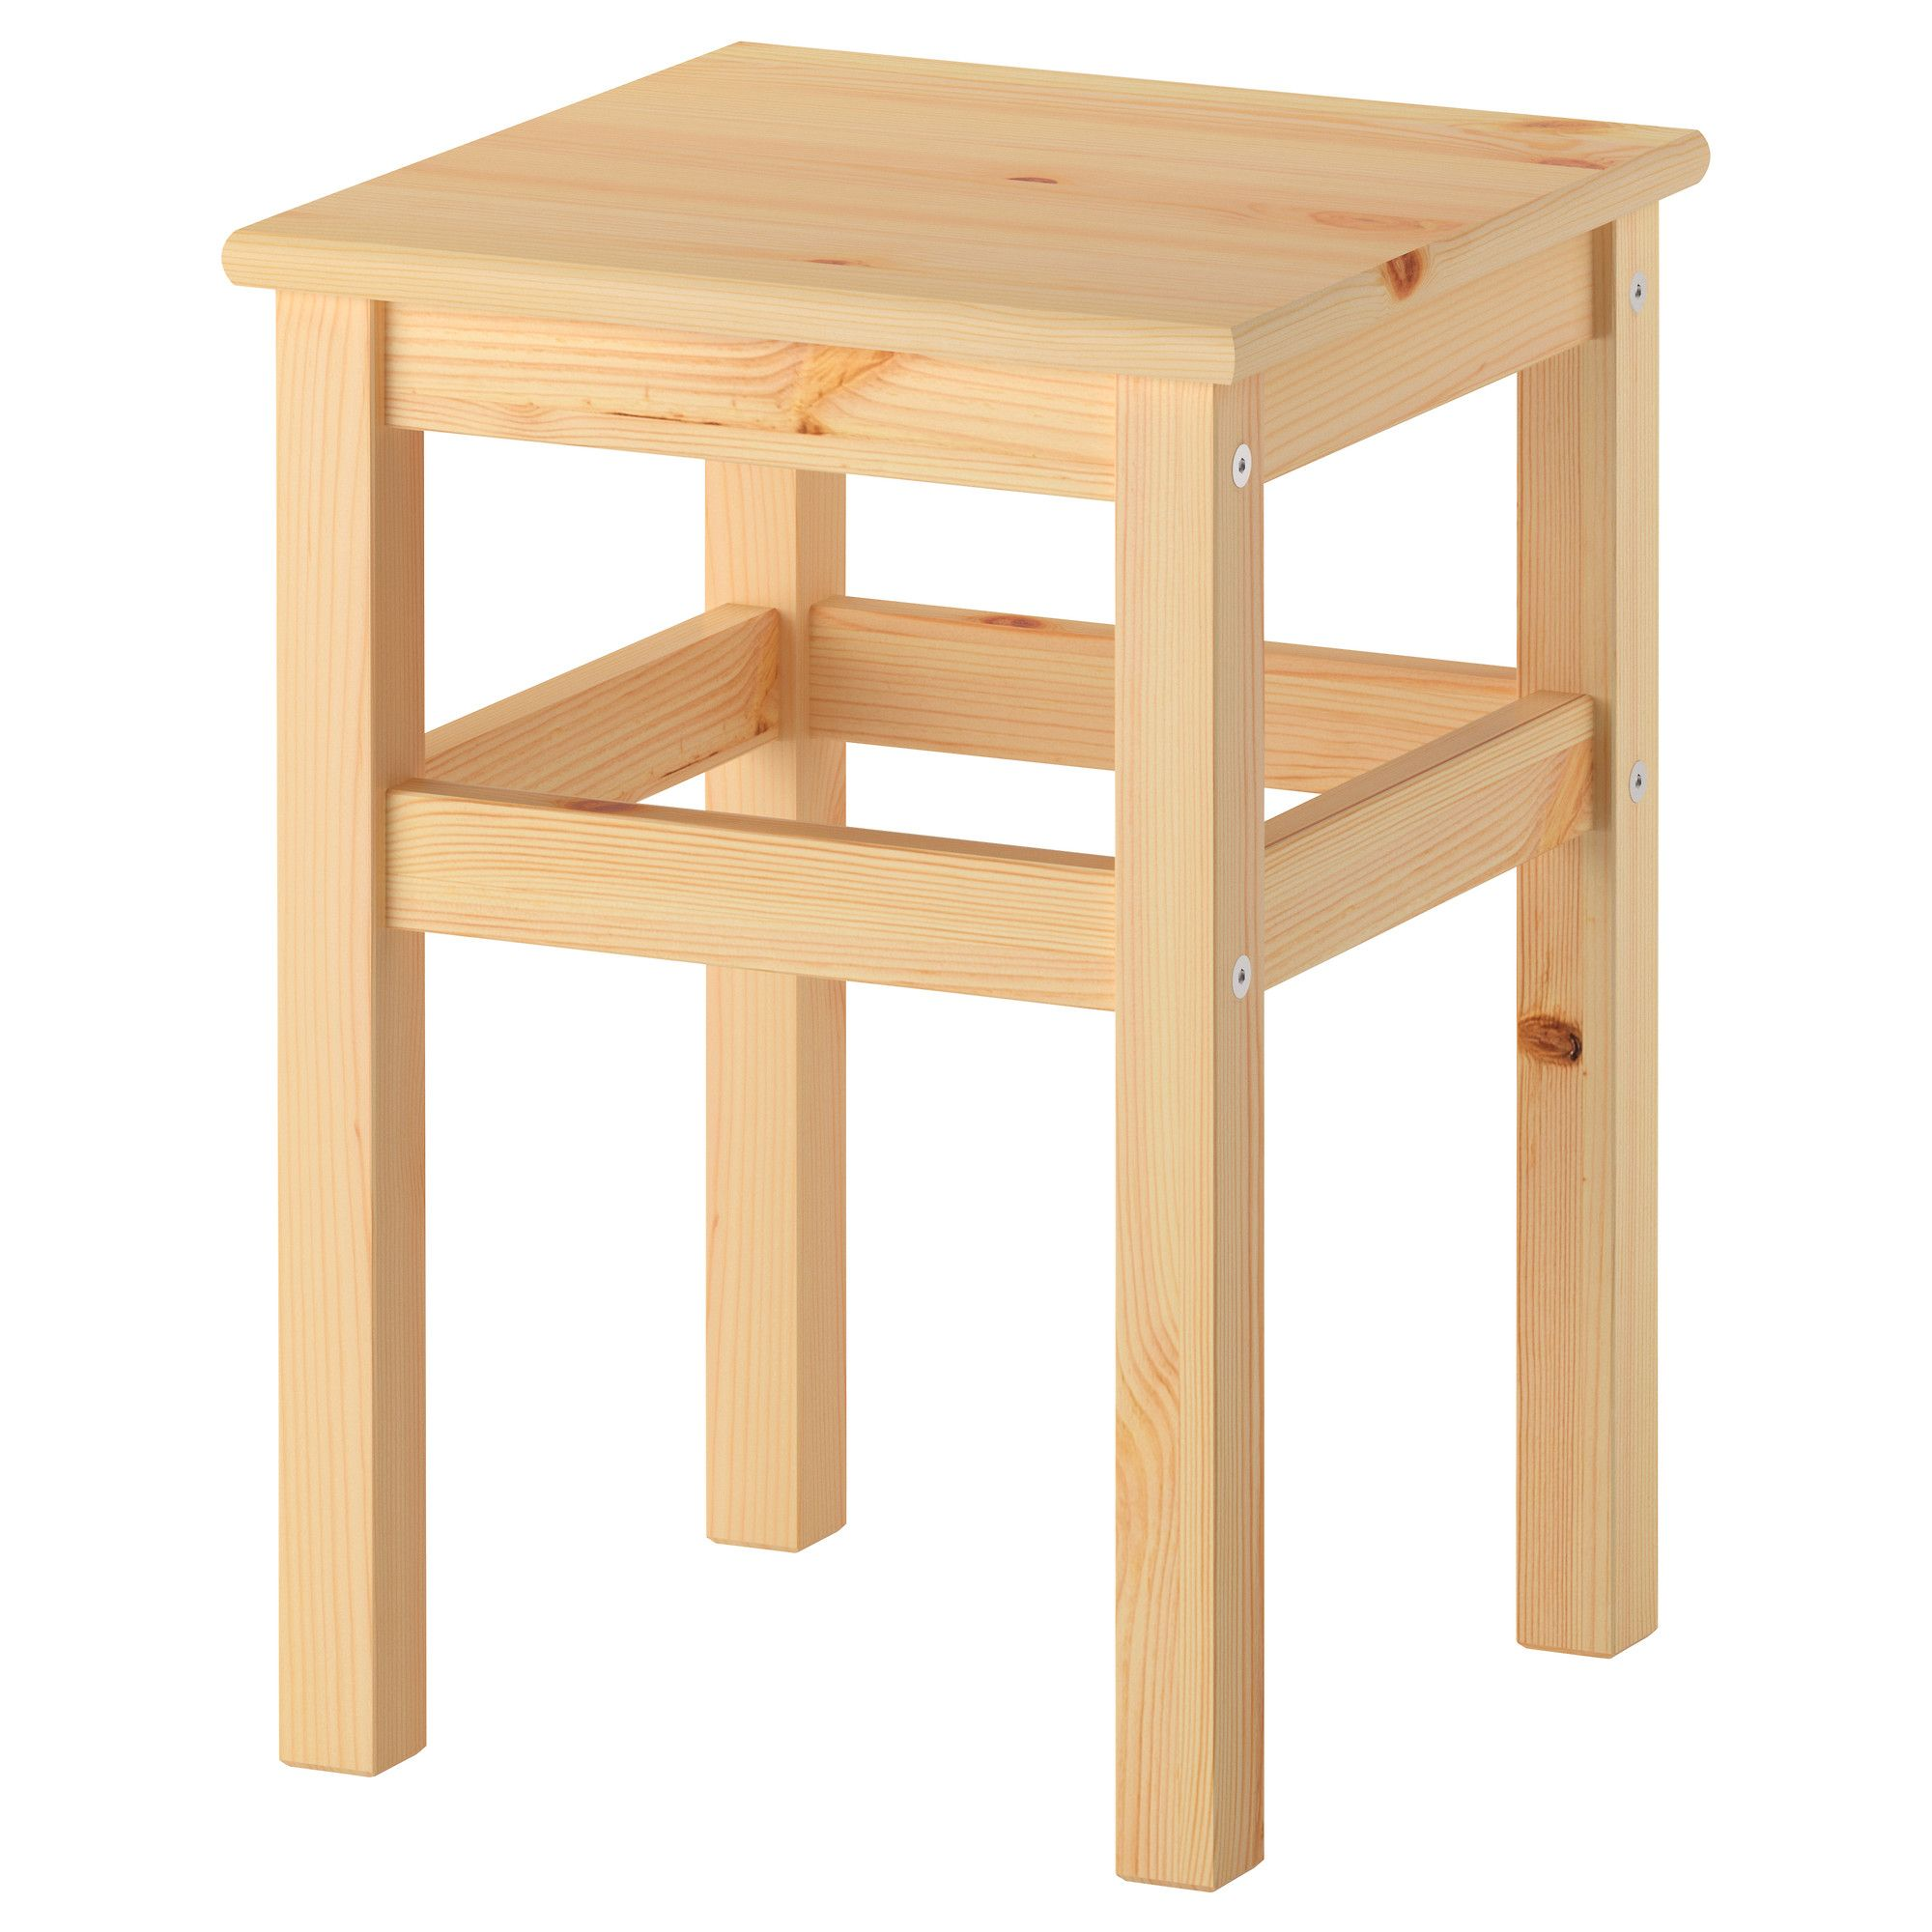 Awesome Wooden Bench Ikea Part - 5: ODDVAR Stool - IKEA | 7 GBP